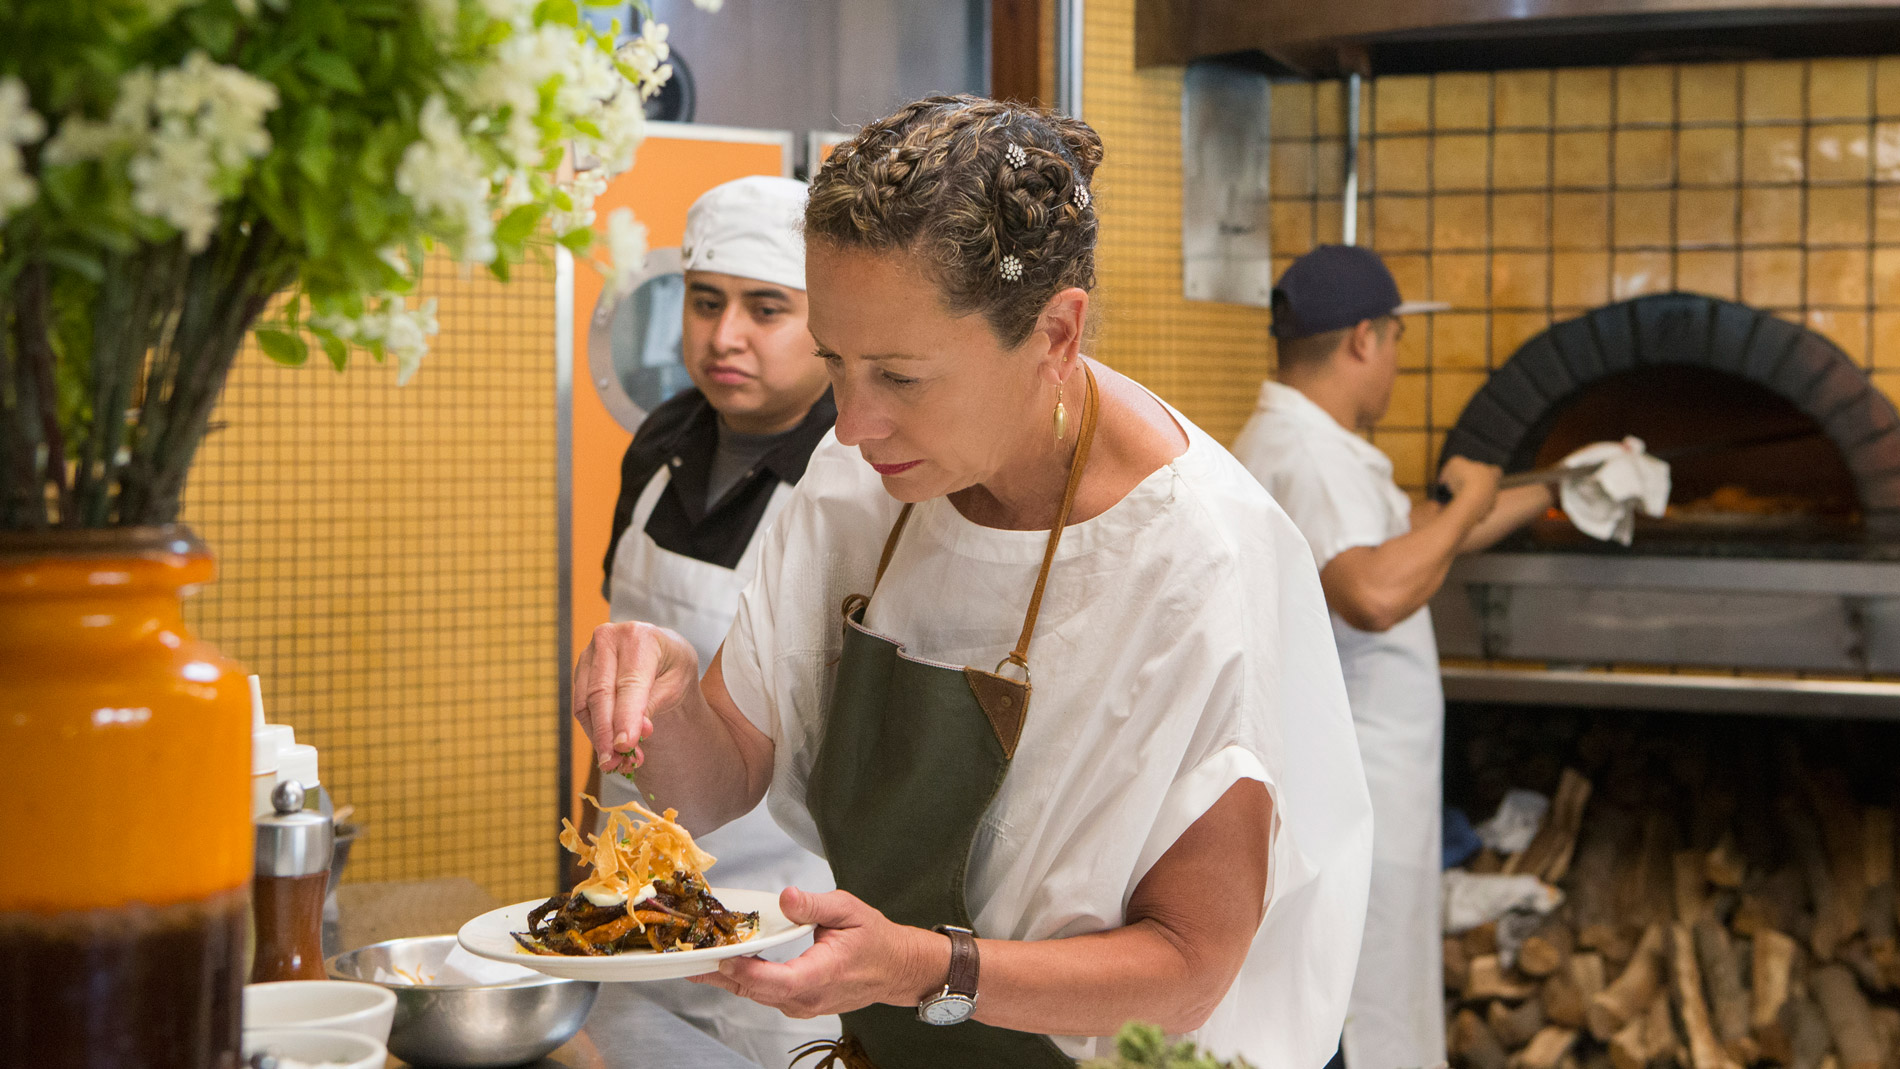 Nancy Silverton, Mozza Restaurant Group with locations in California and Singapore